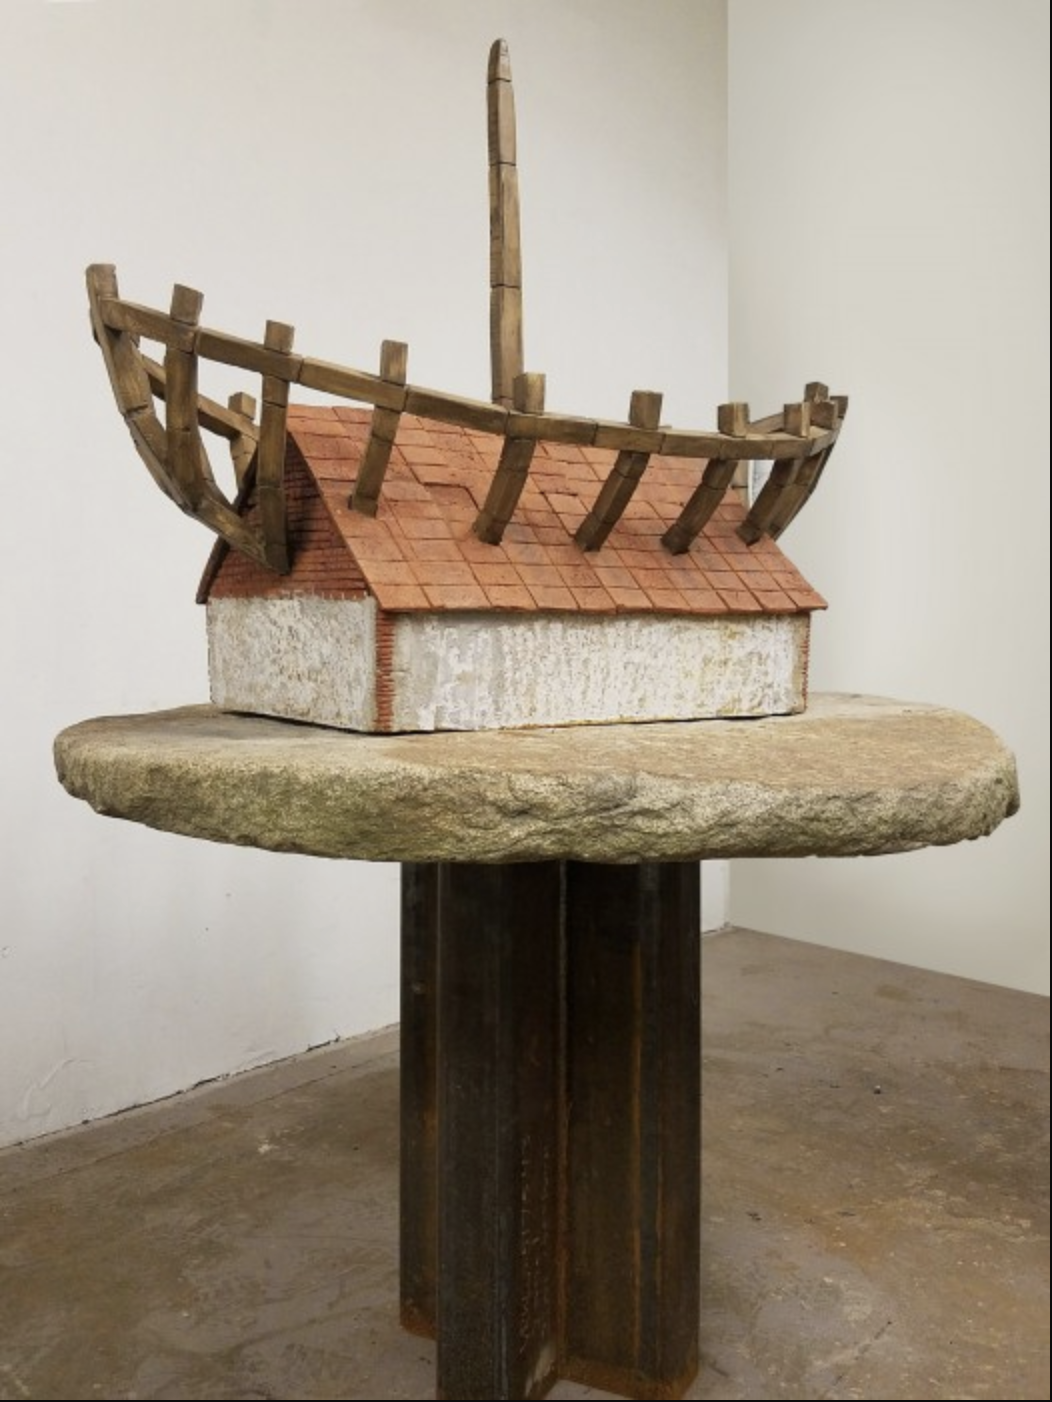 The House in the Boat the Boat in the House 2017 Stone and steel 63 × 46 × 45 inches